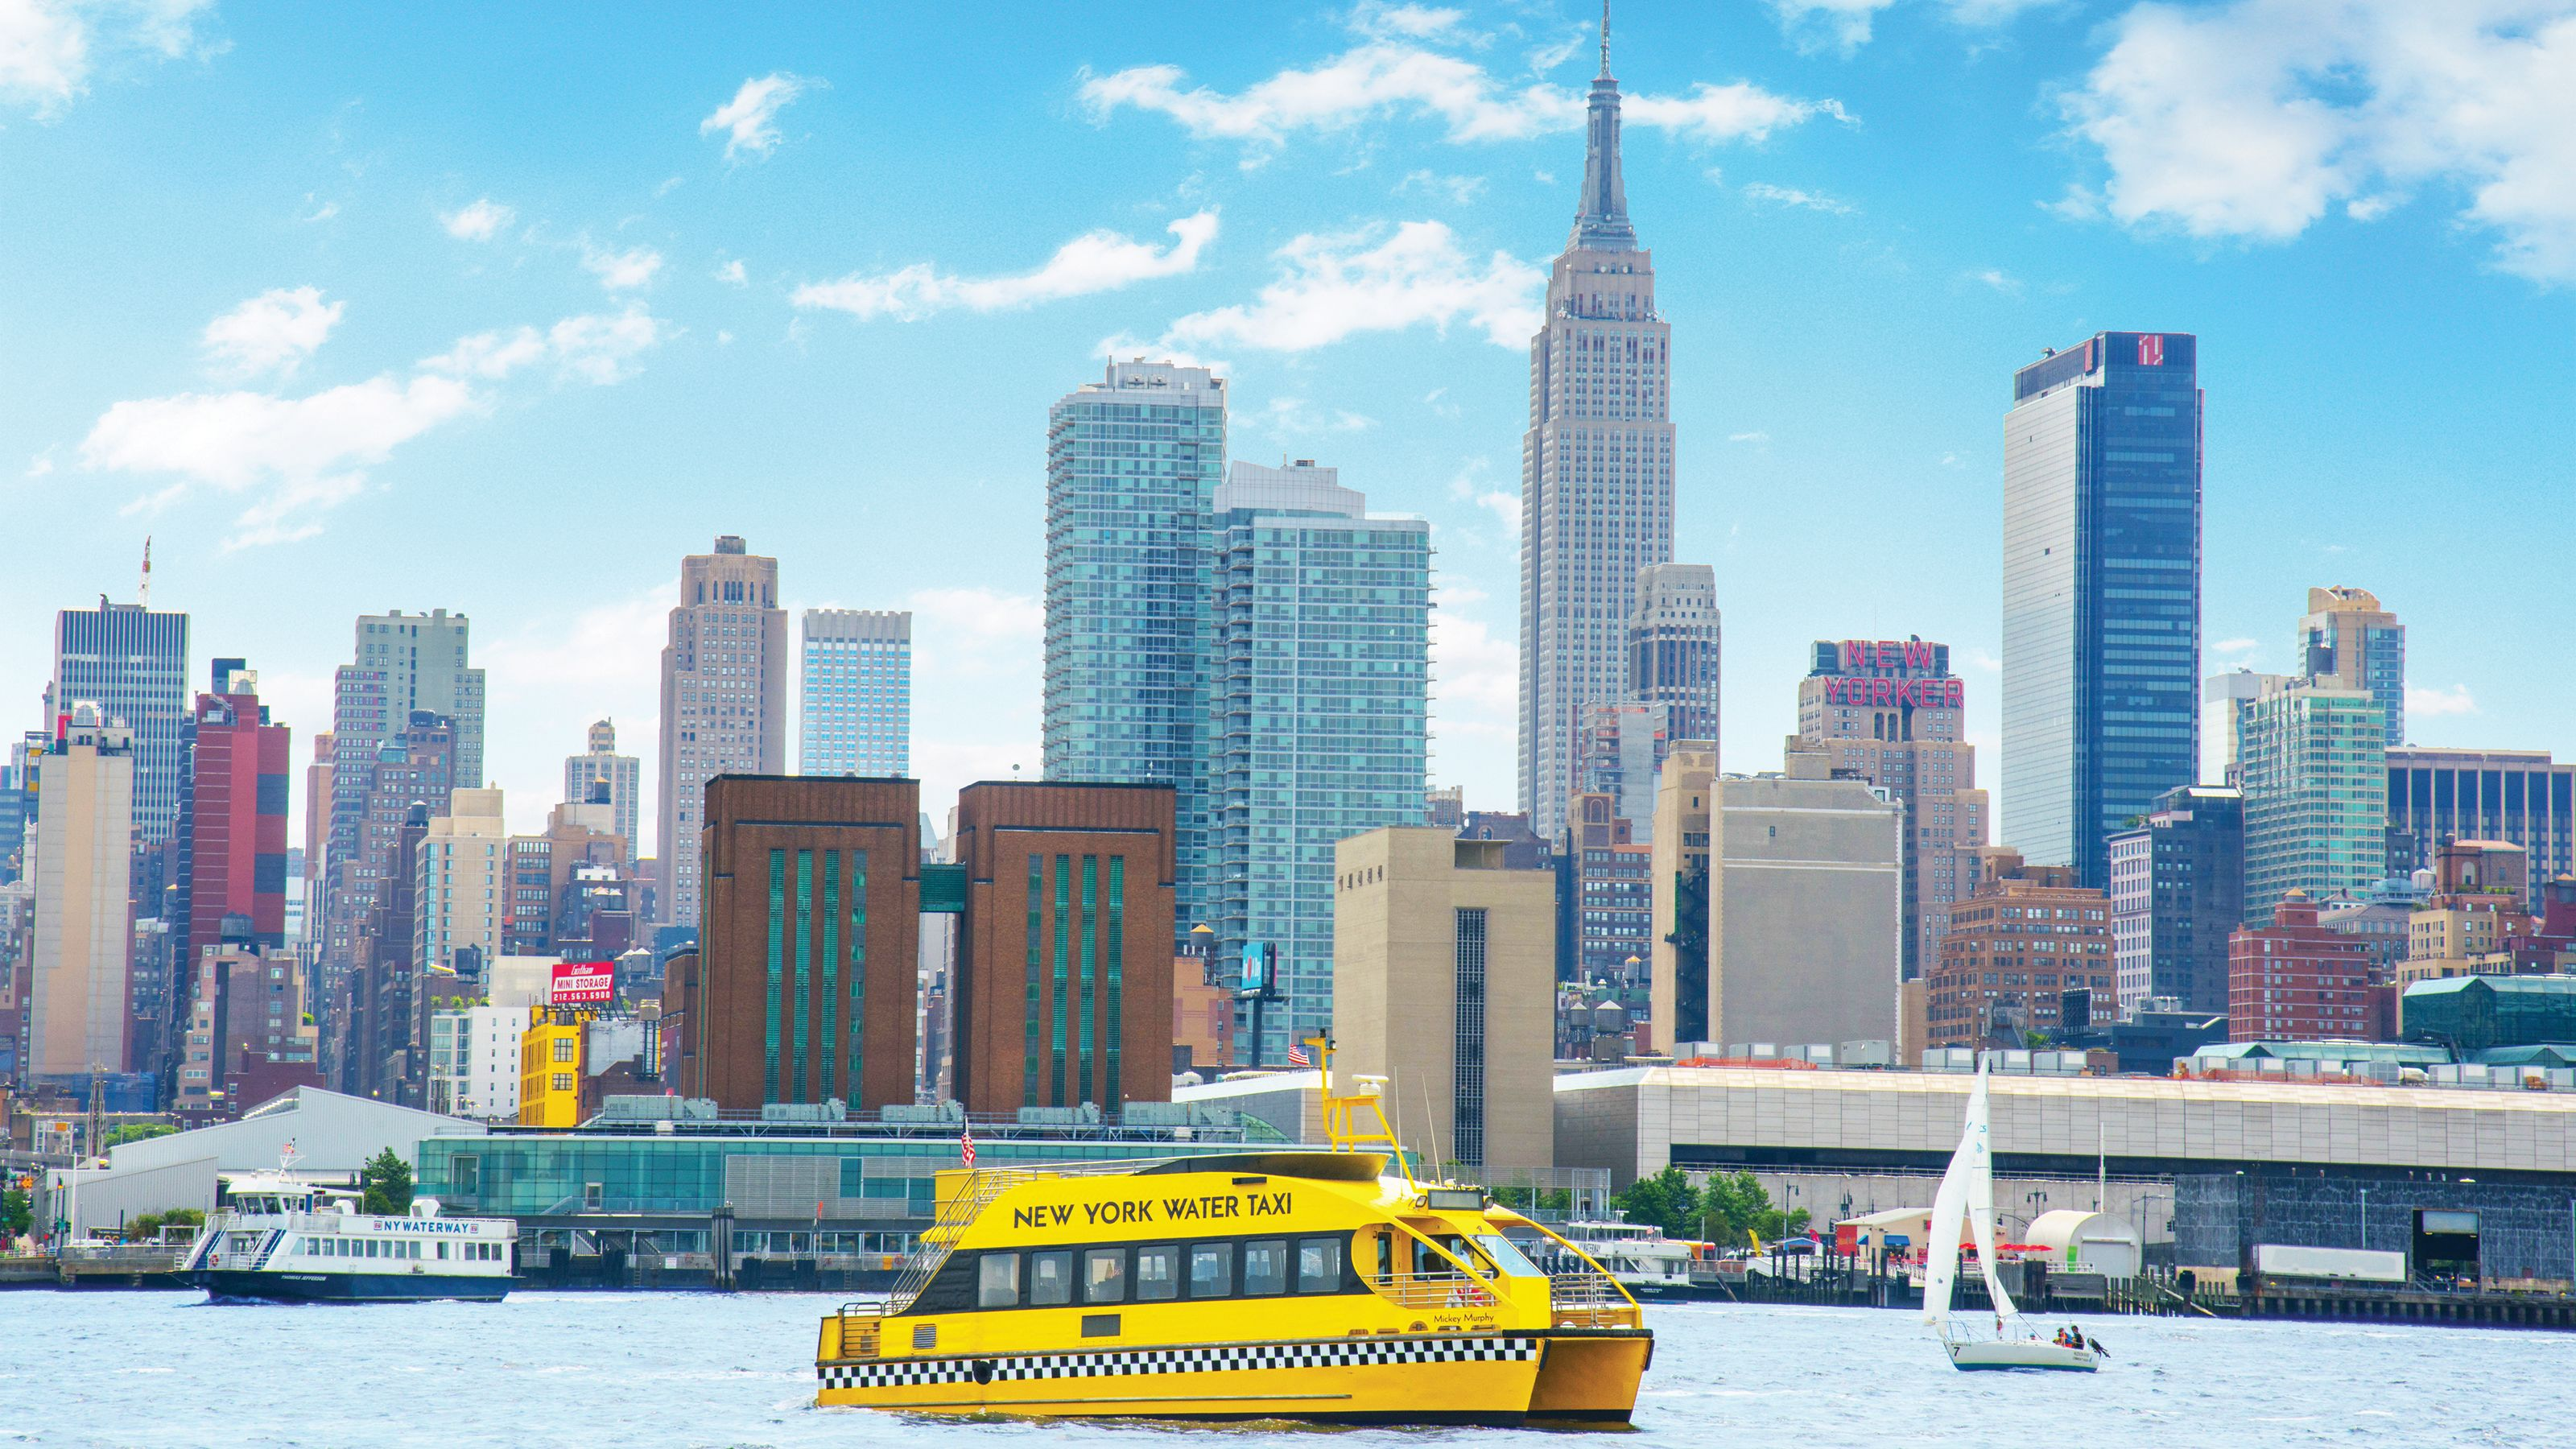 New York Water Taxi with the city in the background